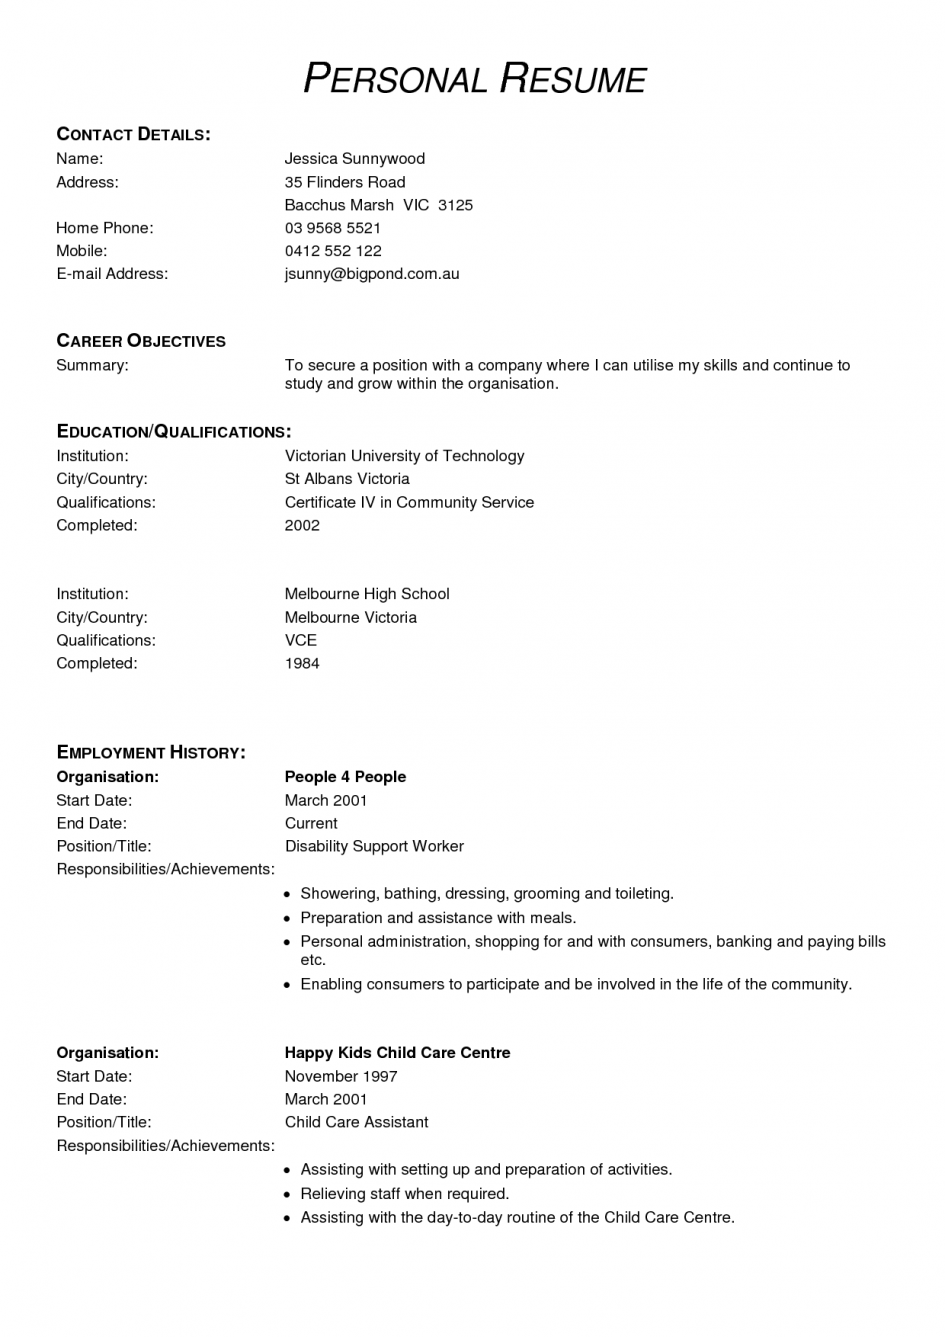 No Experience Resume Sample Healthcareassistantcvwithnoexperience 945×1337